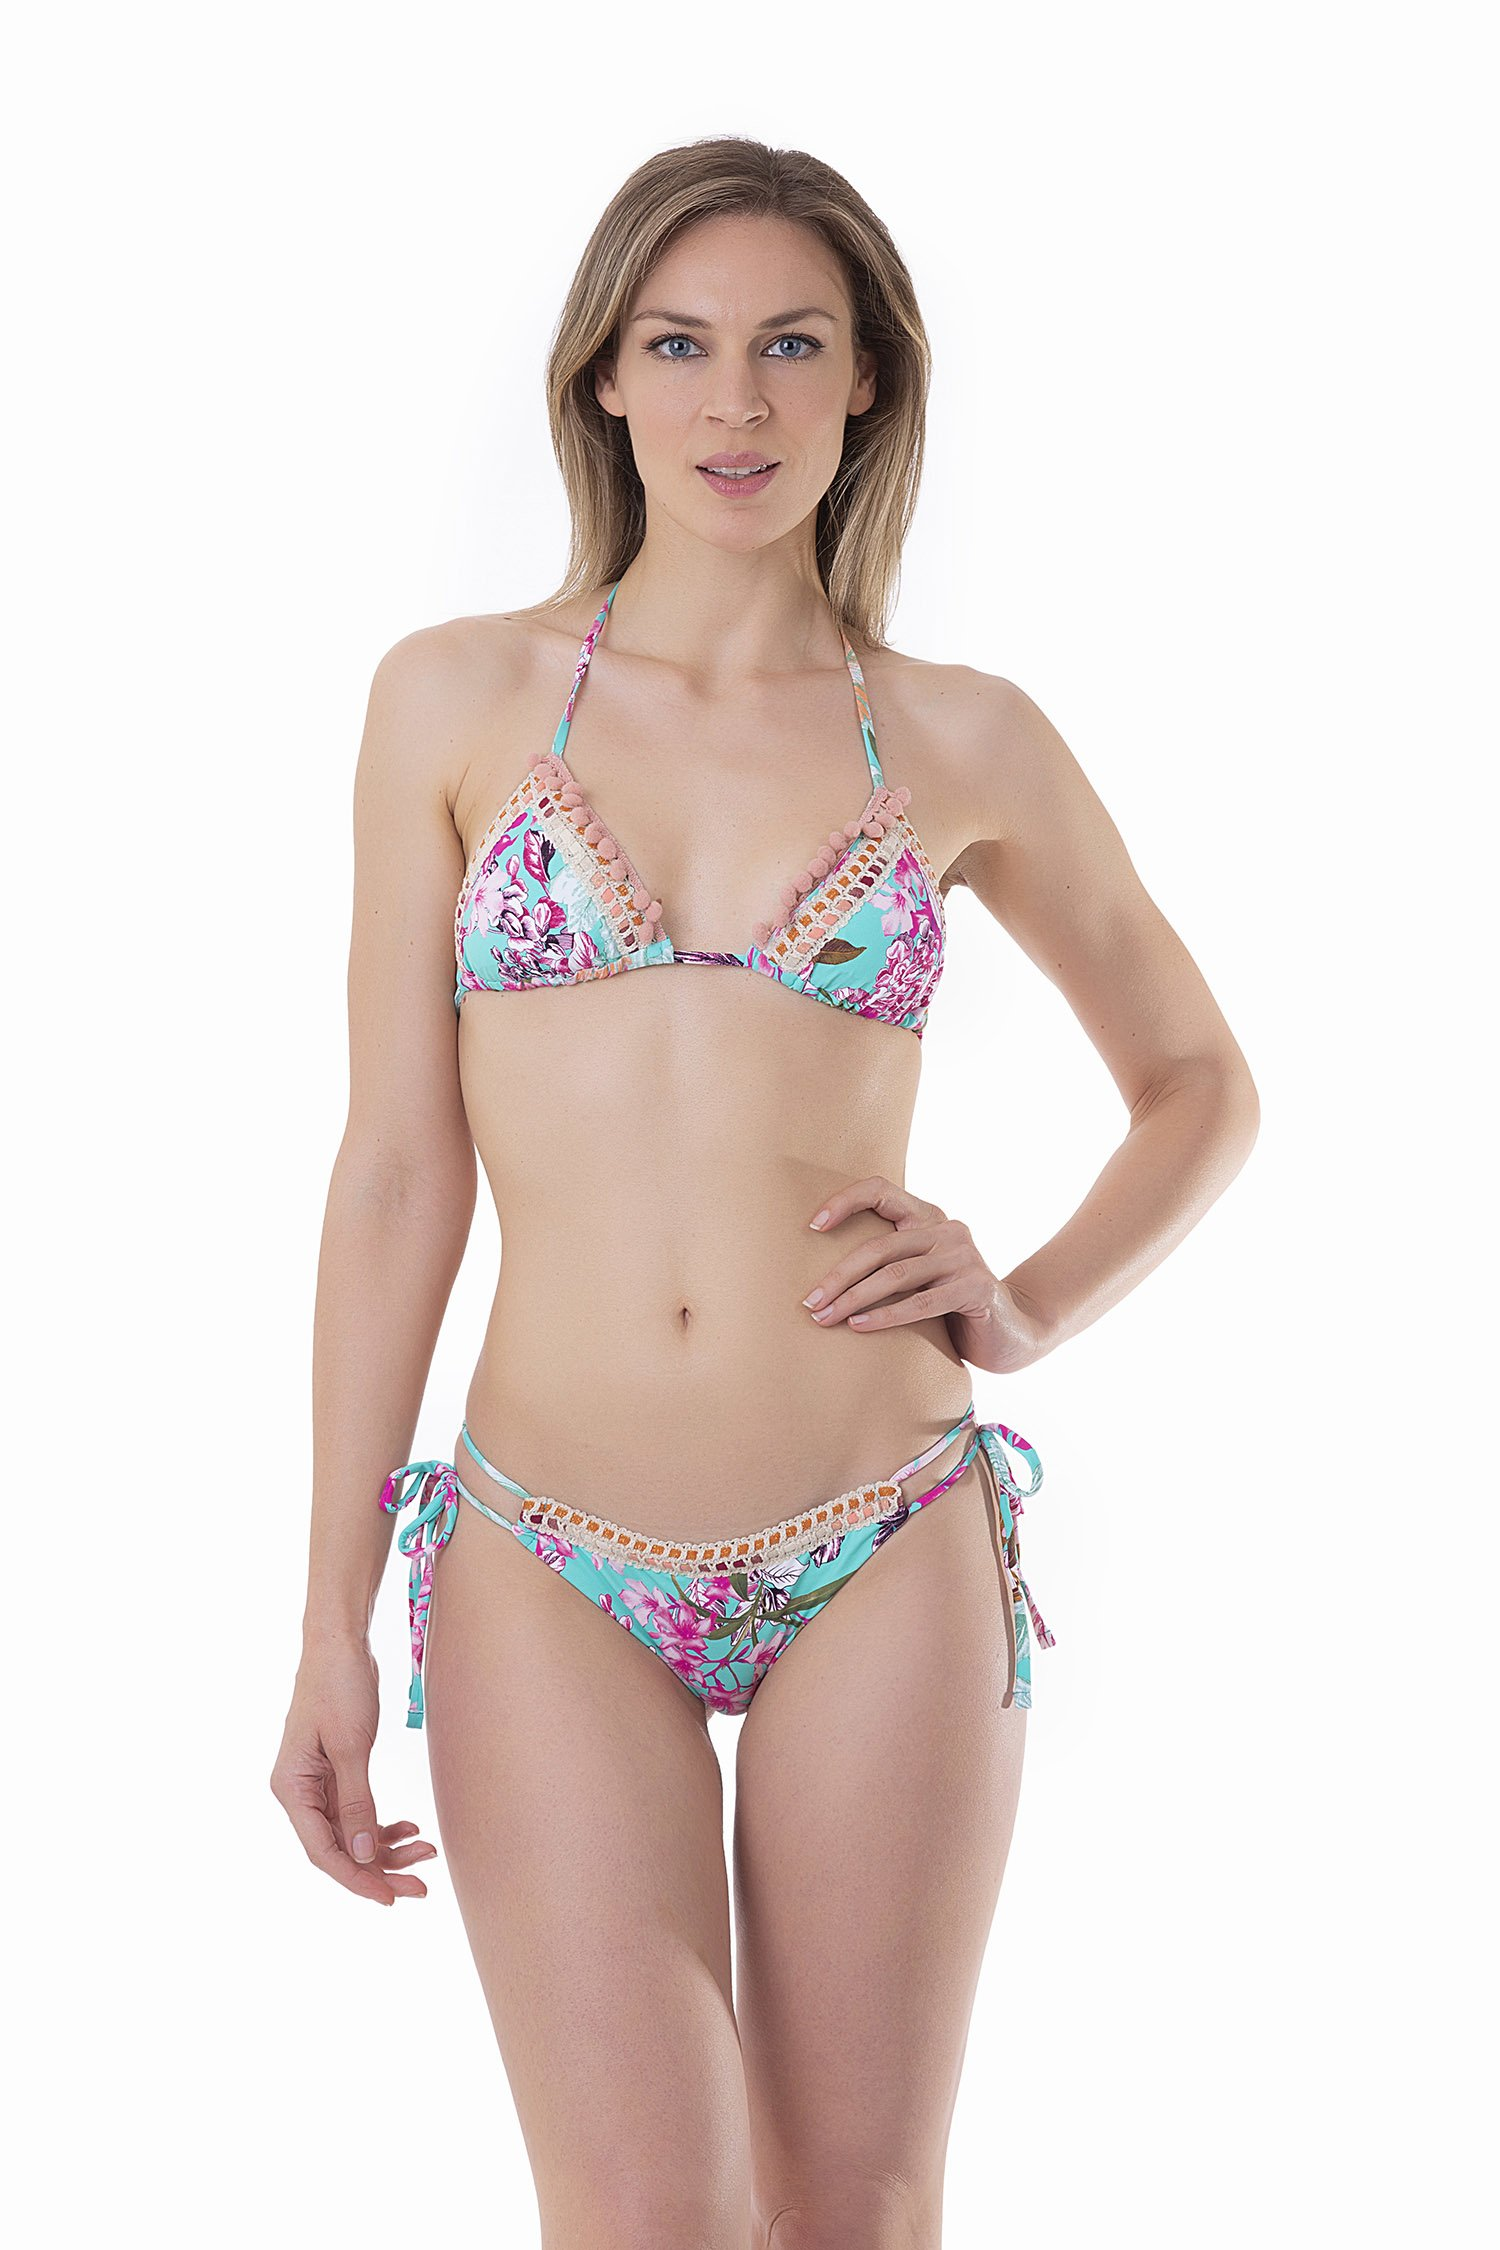 LUXE PRINTED TRIANGLE BIKINI WITH TRIMMING - Fiori Azzurro